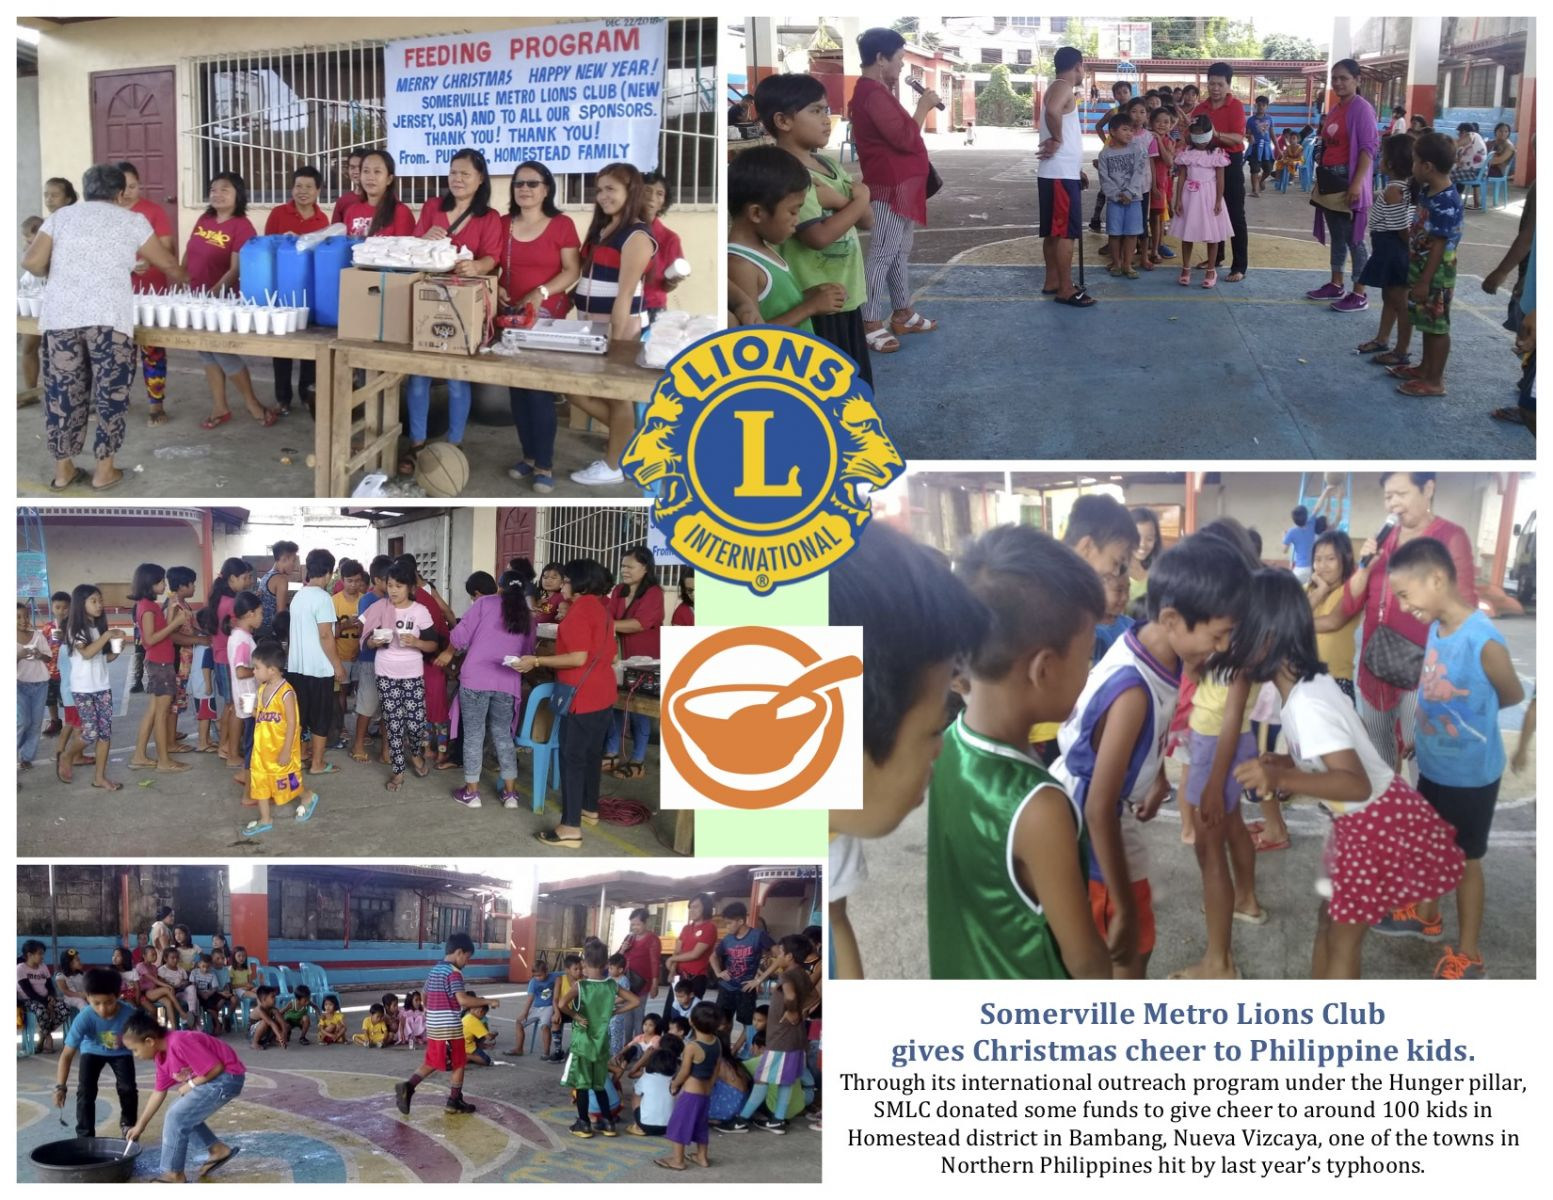 SMLC donated to the Phillippines